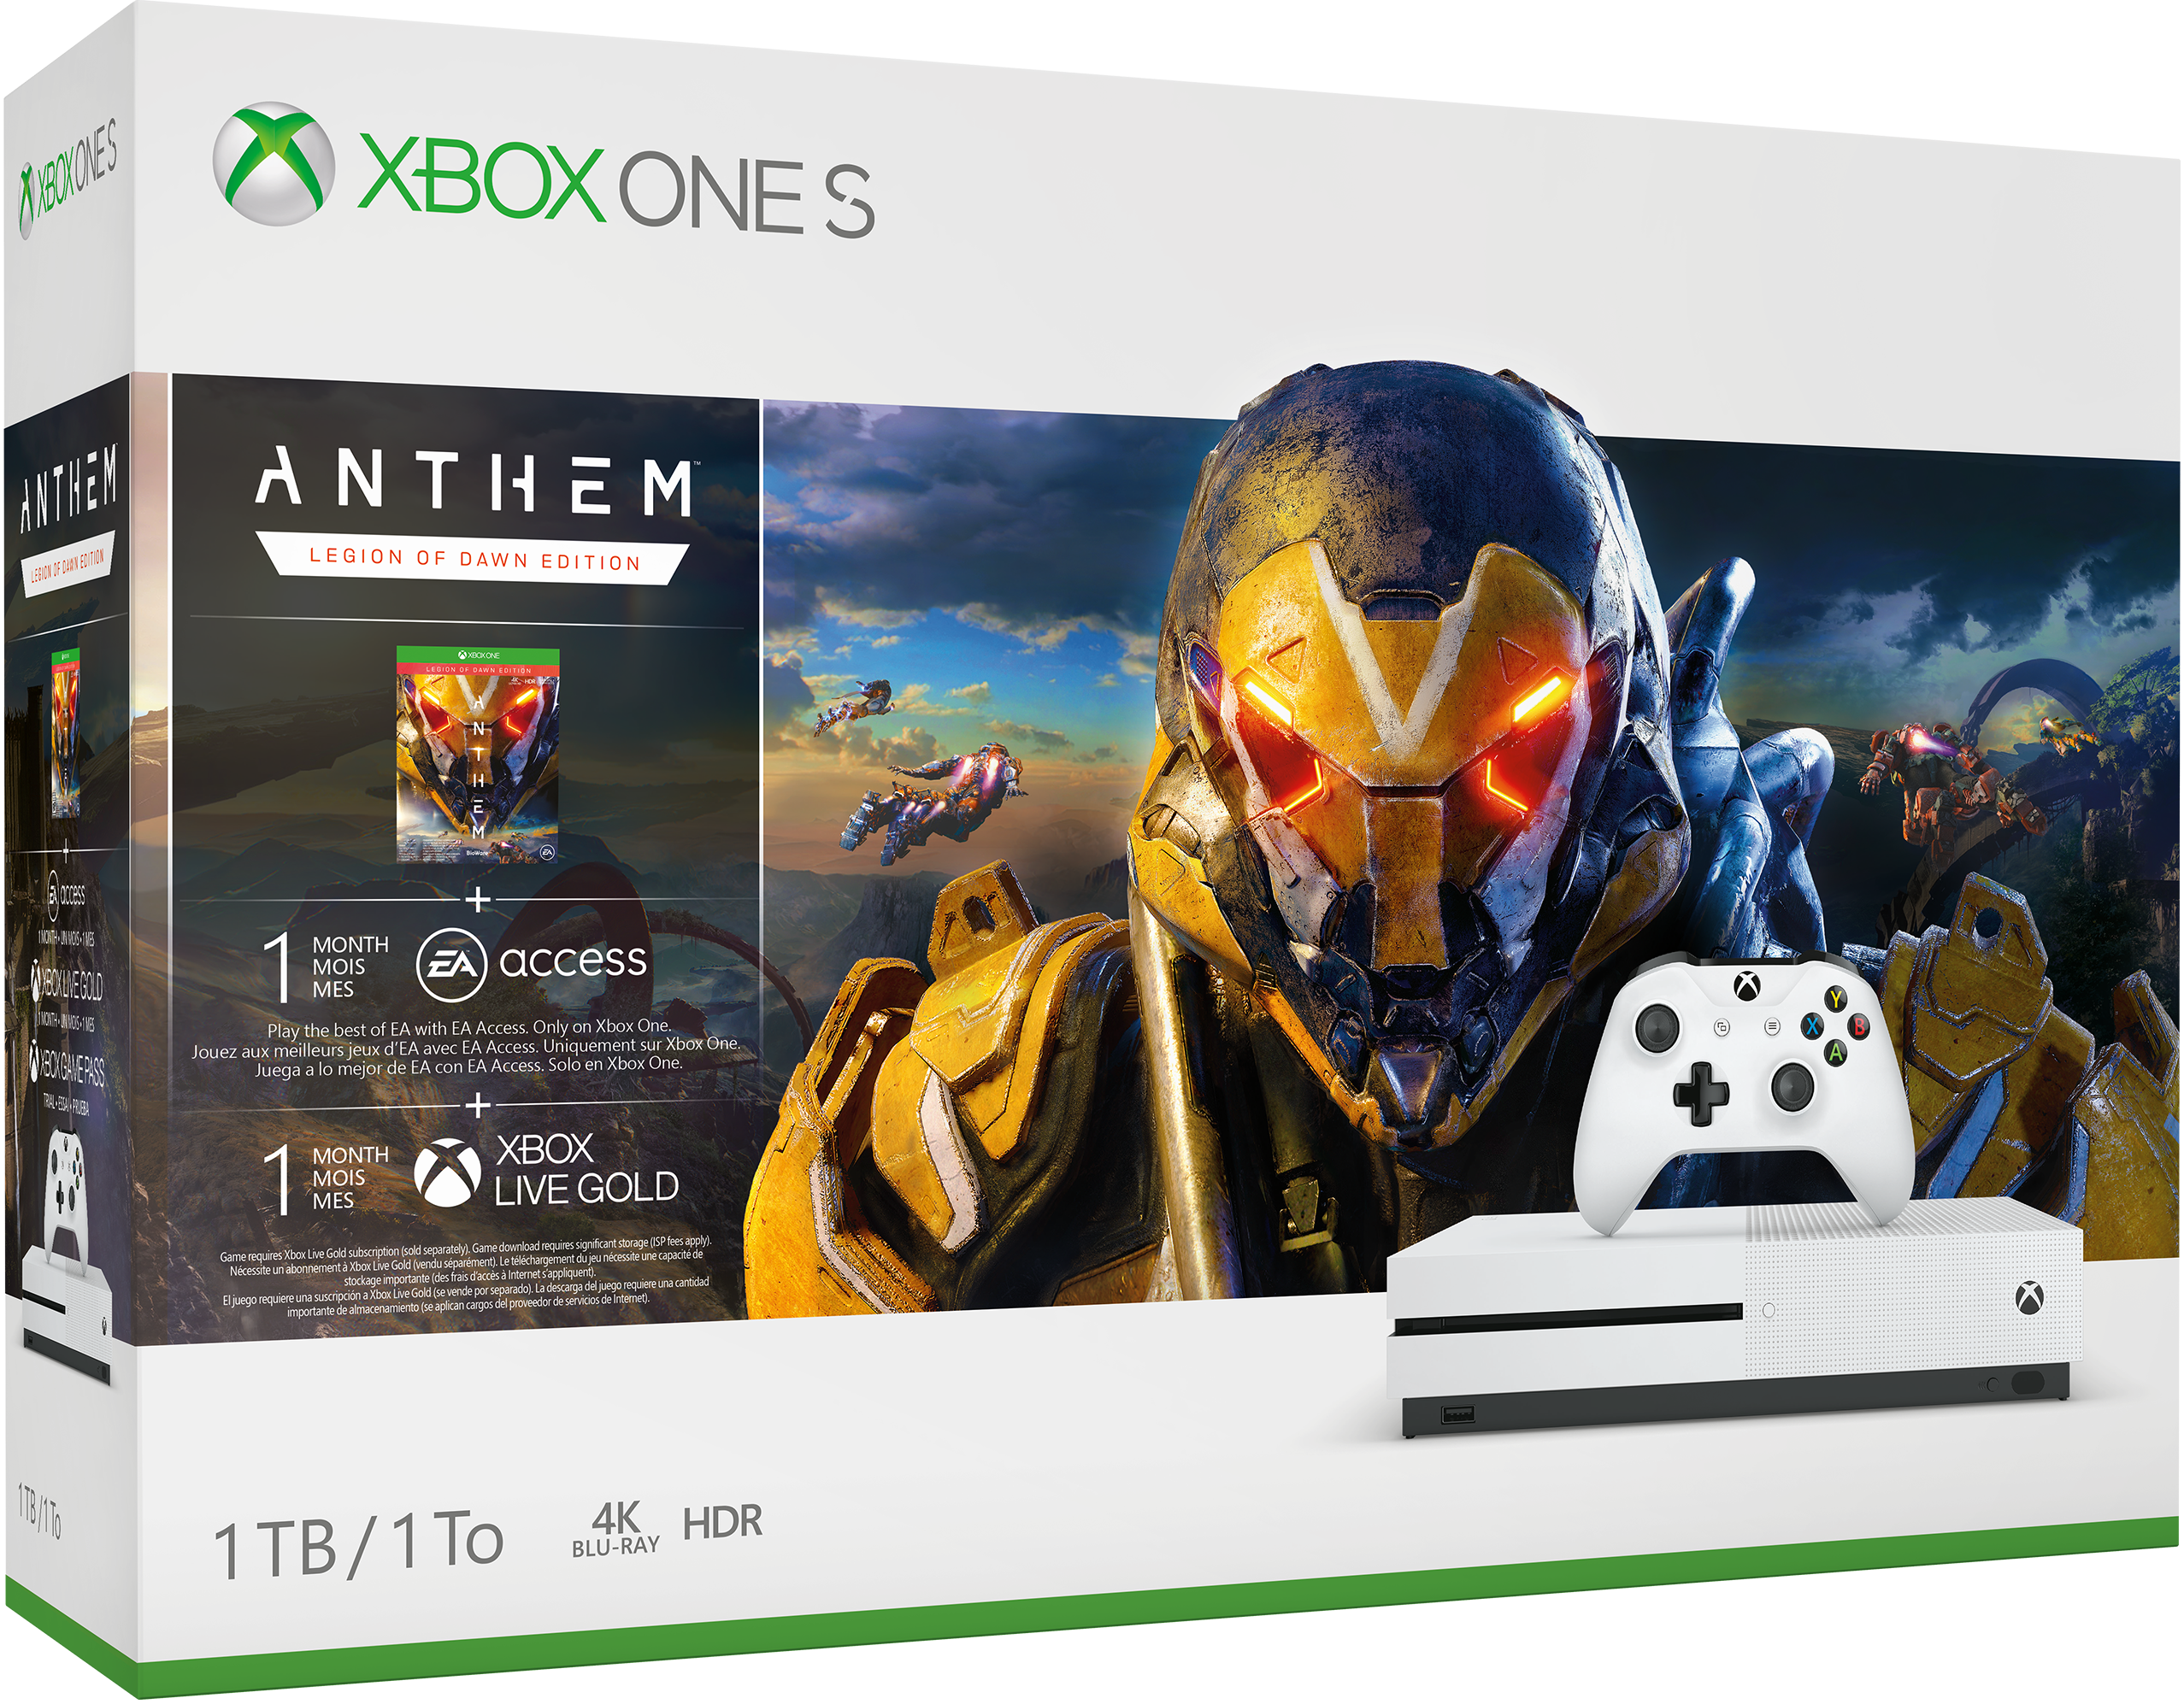 Boîtier du pack Anthem Xbox One S